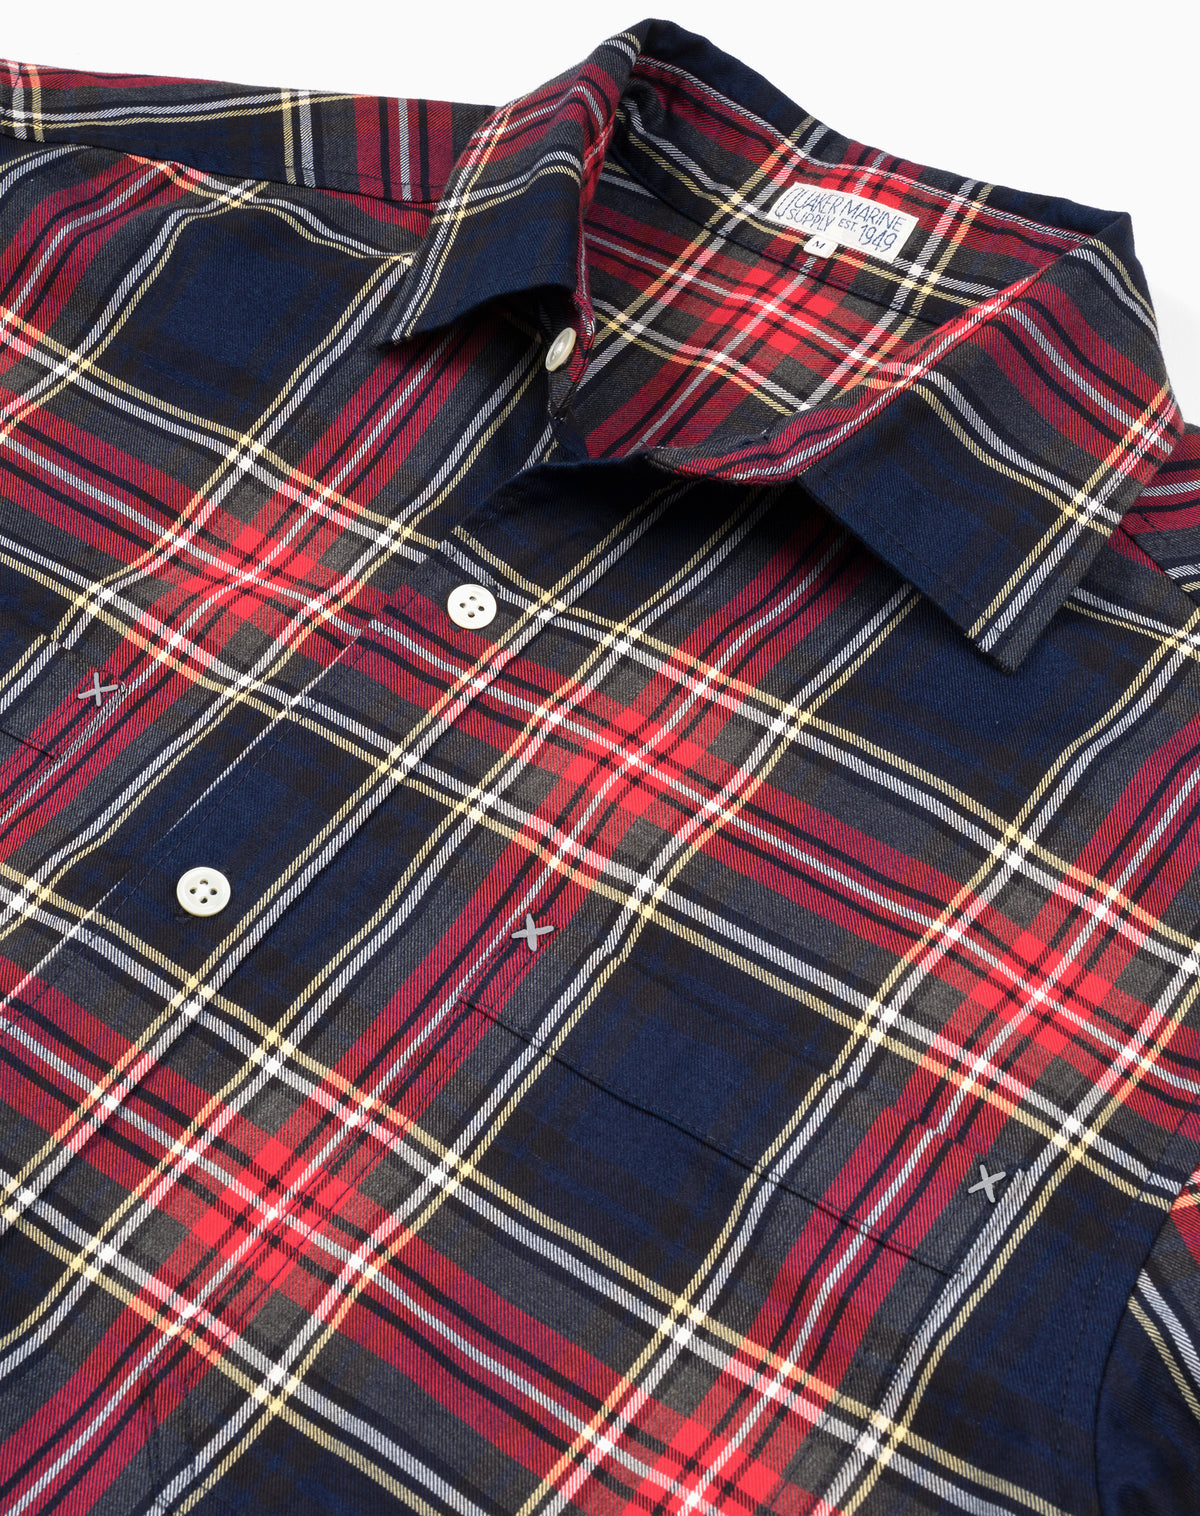 Bangor Flannel in Navy/Red